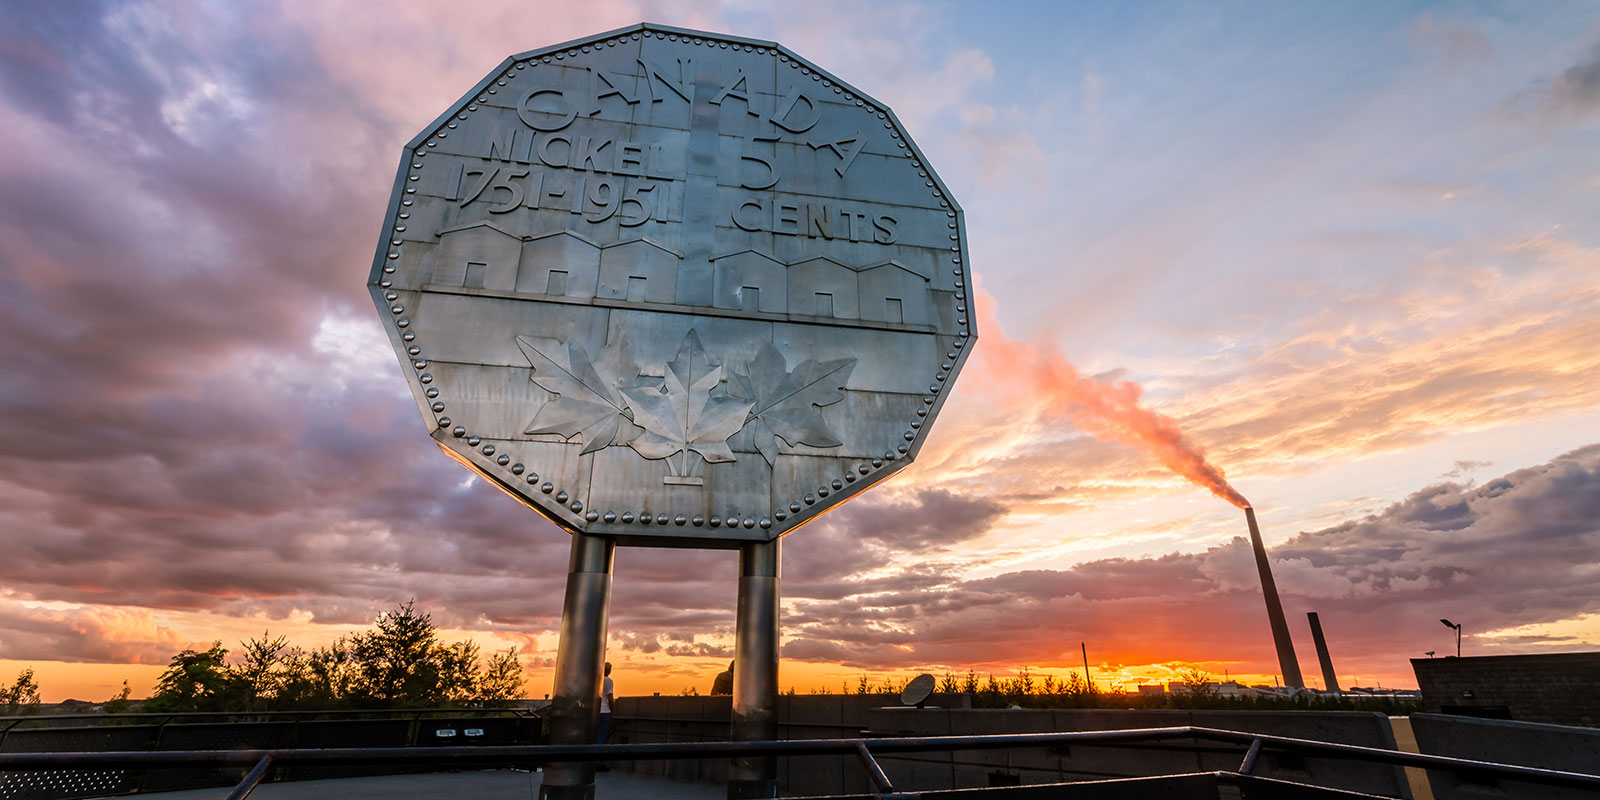 Photo of the Big Nickel landmark in Sudbury, Ontario